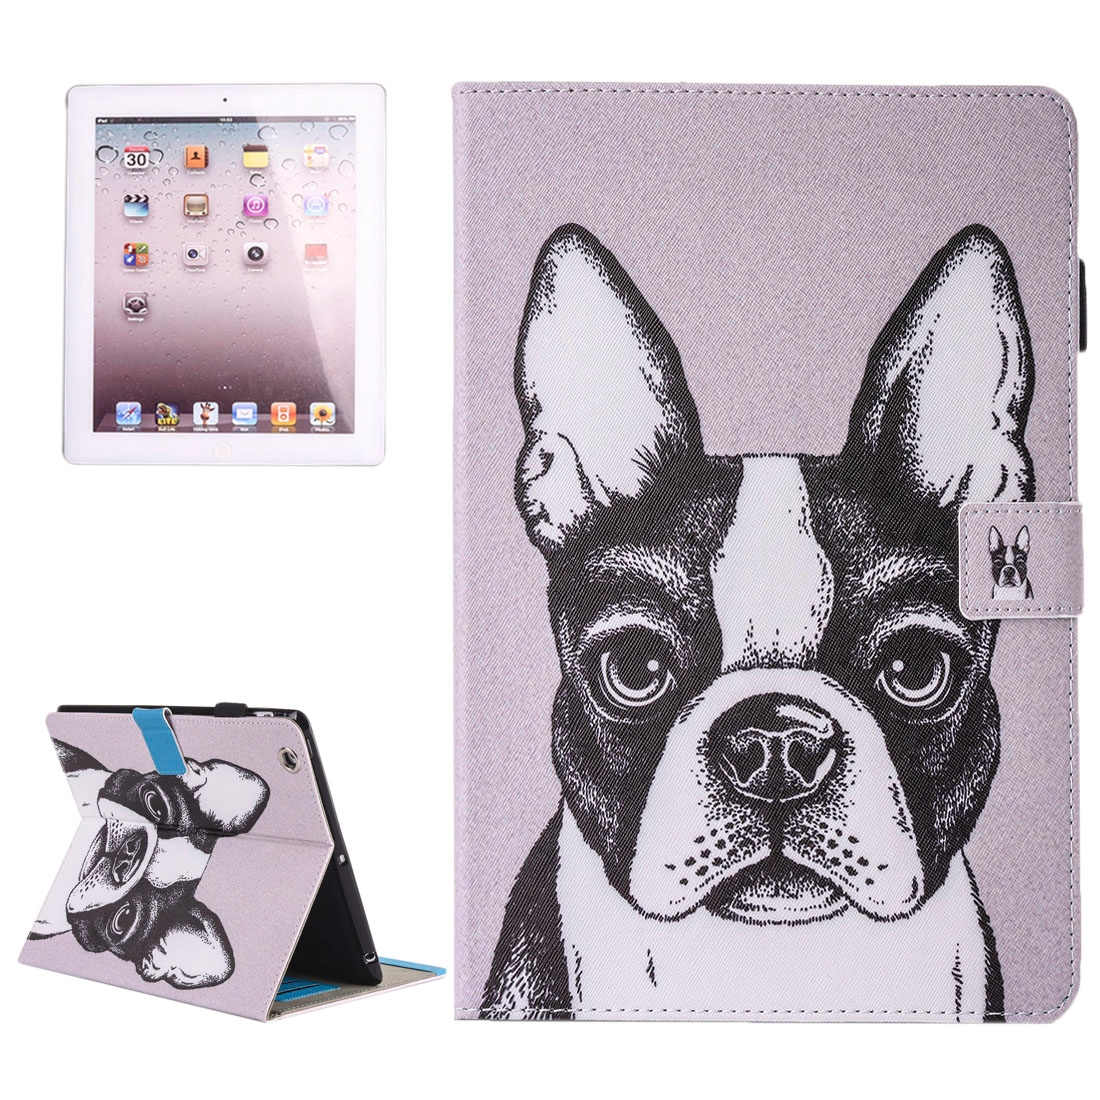 iPad 2 Case Fits iPad  2, 3, 4, Painted Bulldog Leather Case with Stand, Sleeves & Pen Holder